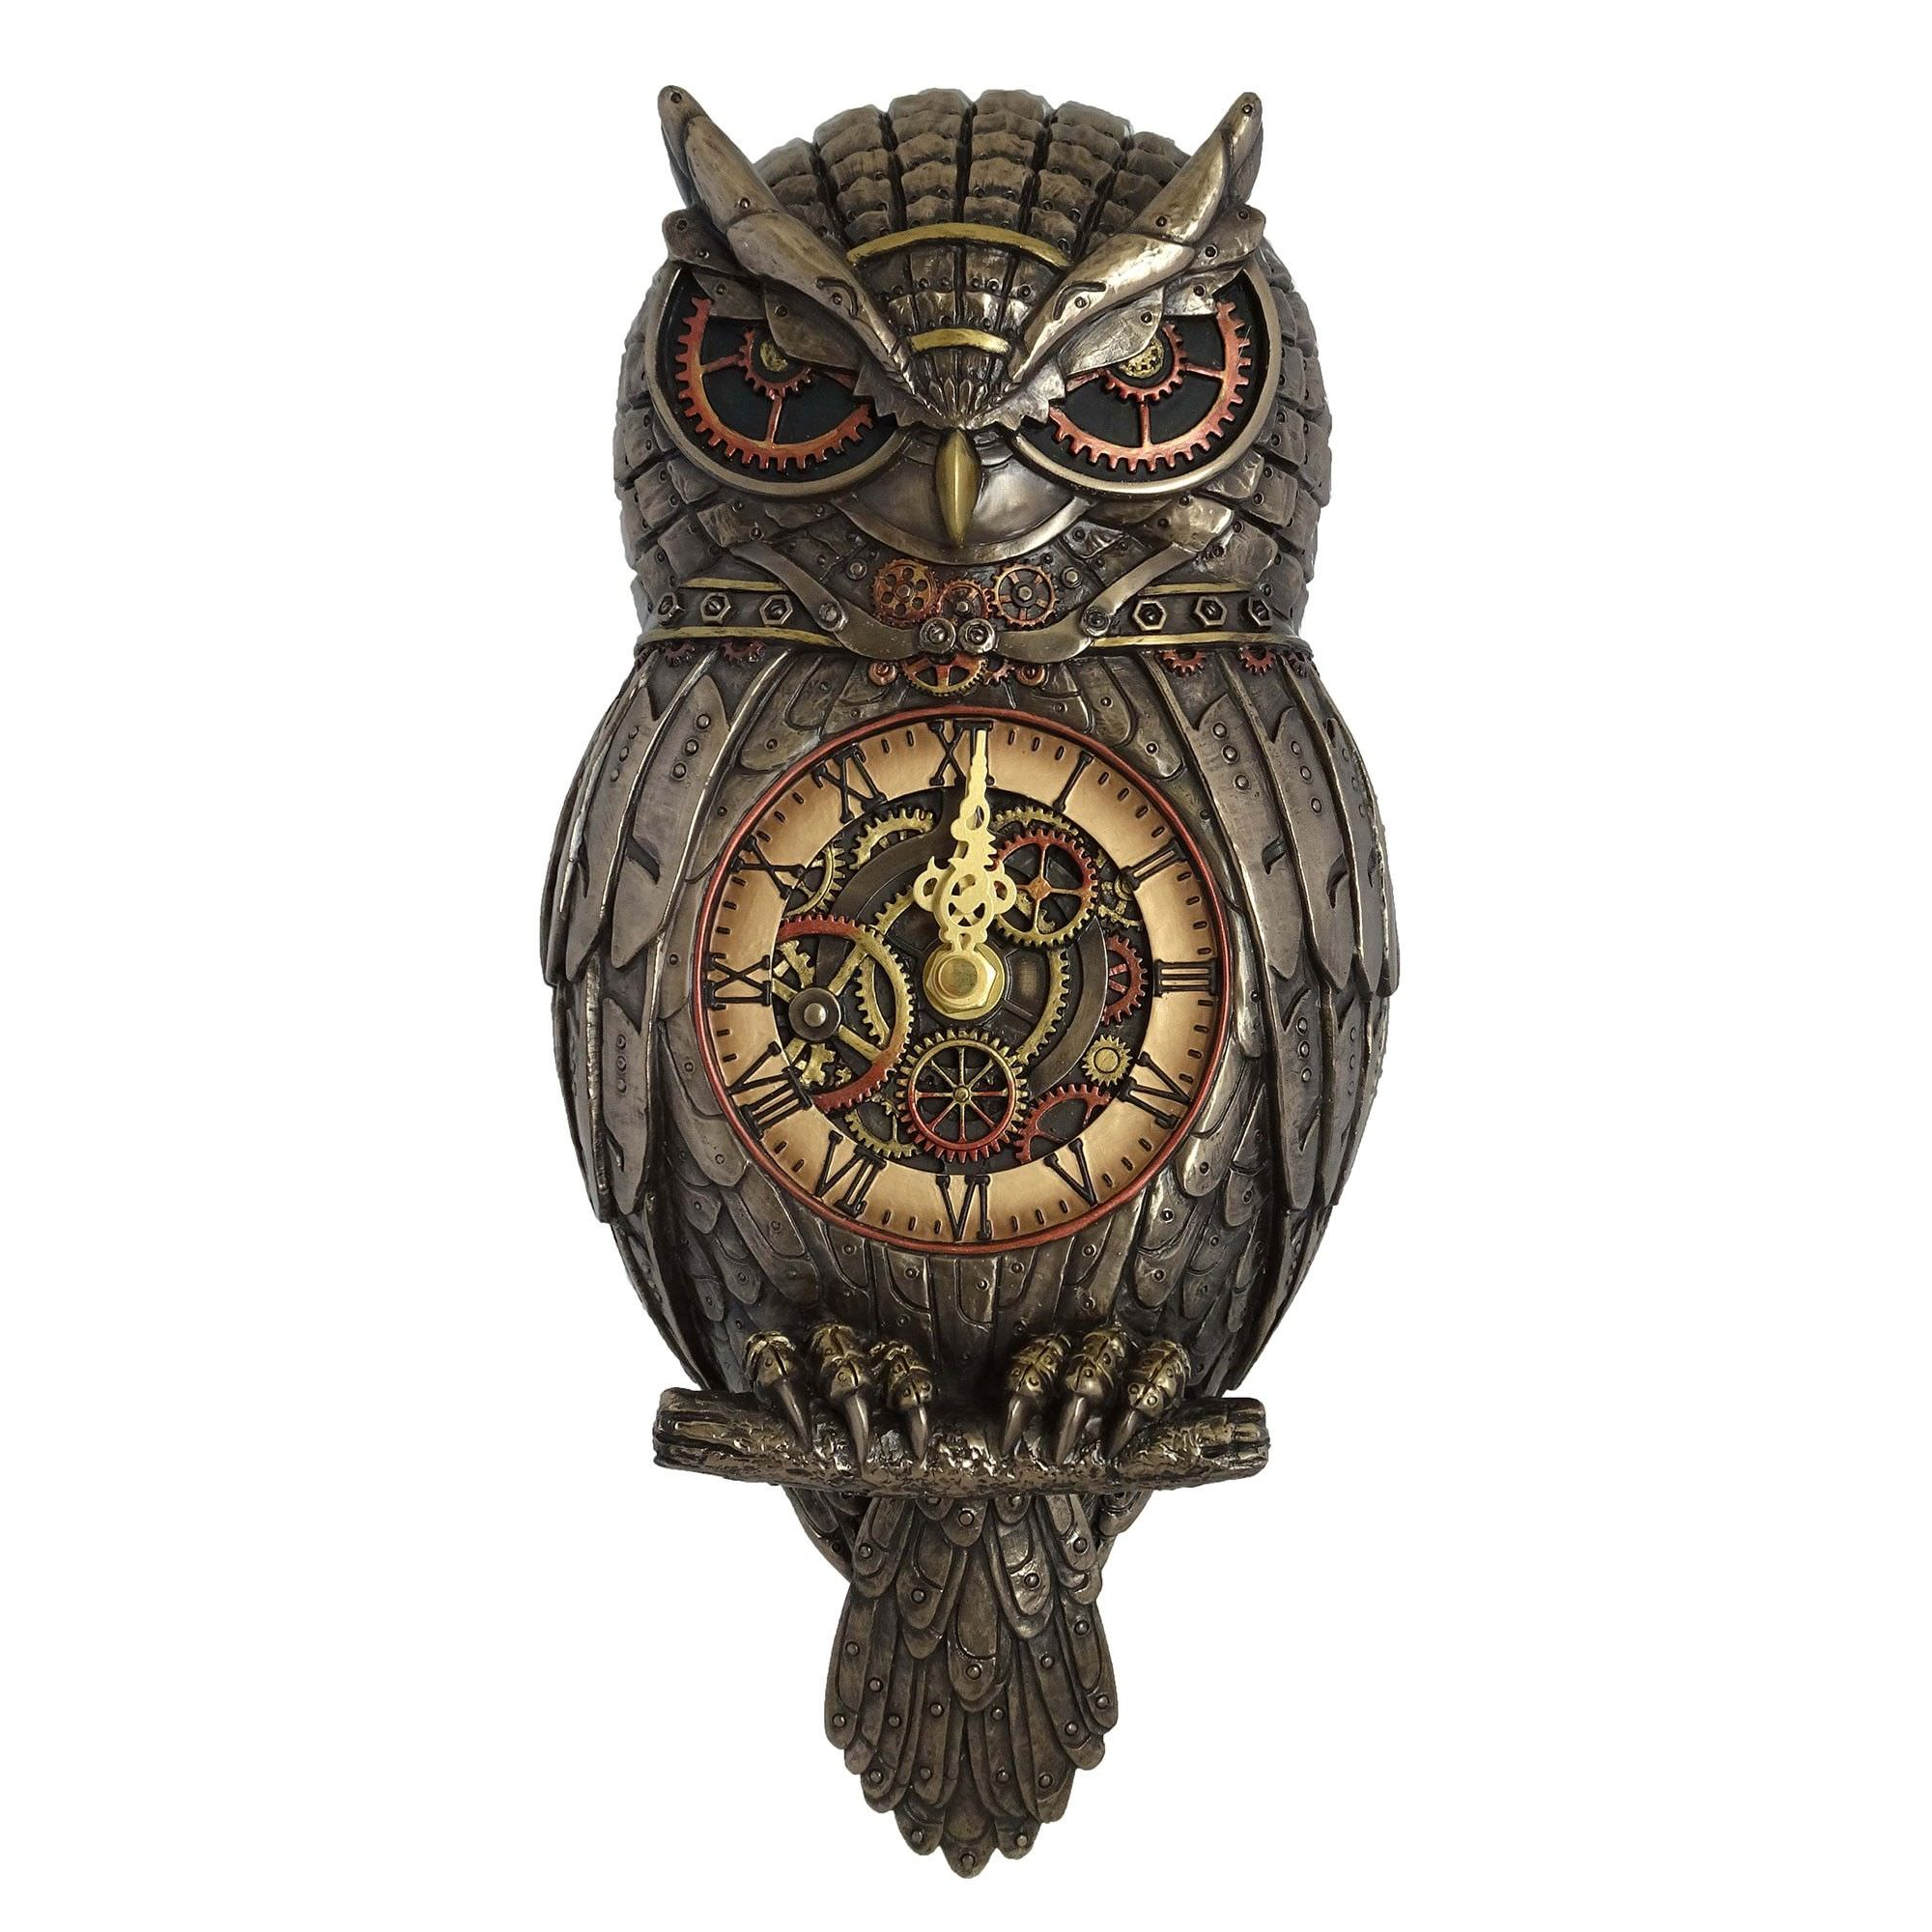 Veronese Cold Cast Bronze Coated Steampunk Statue Wall Clock, Owl